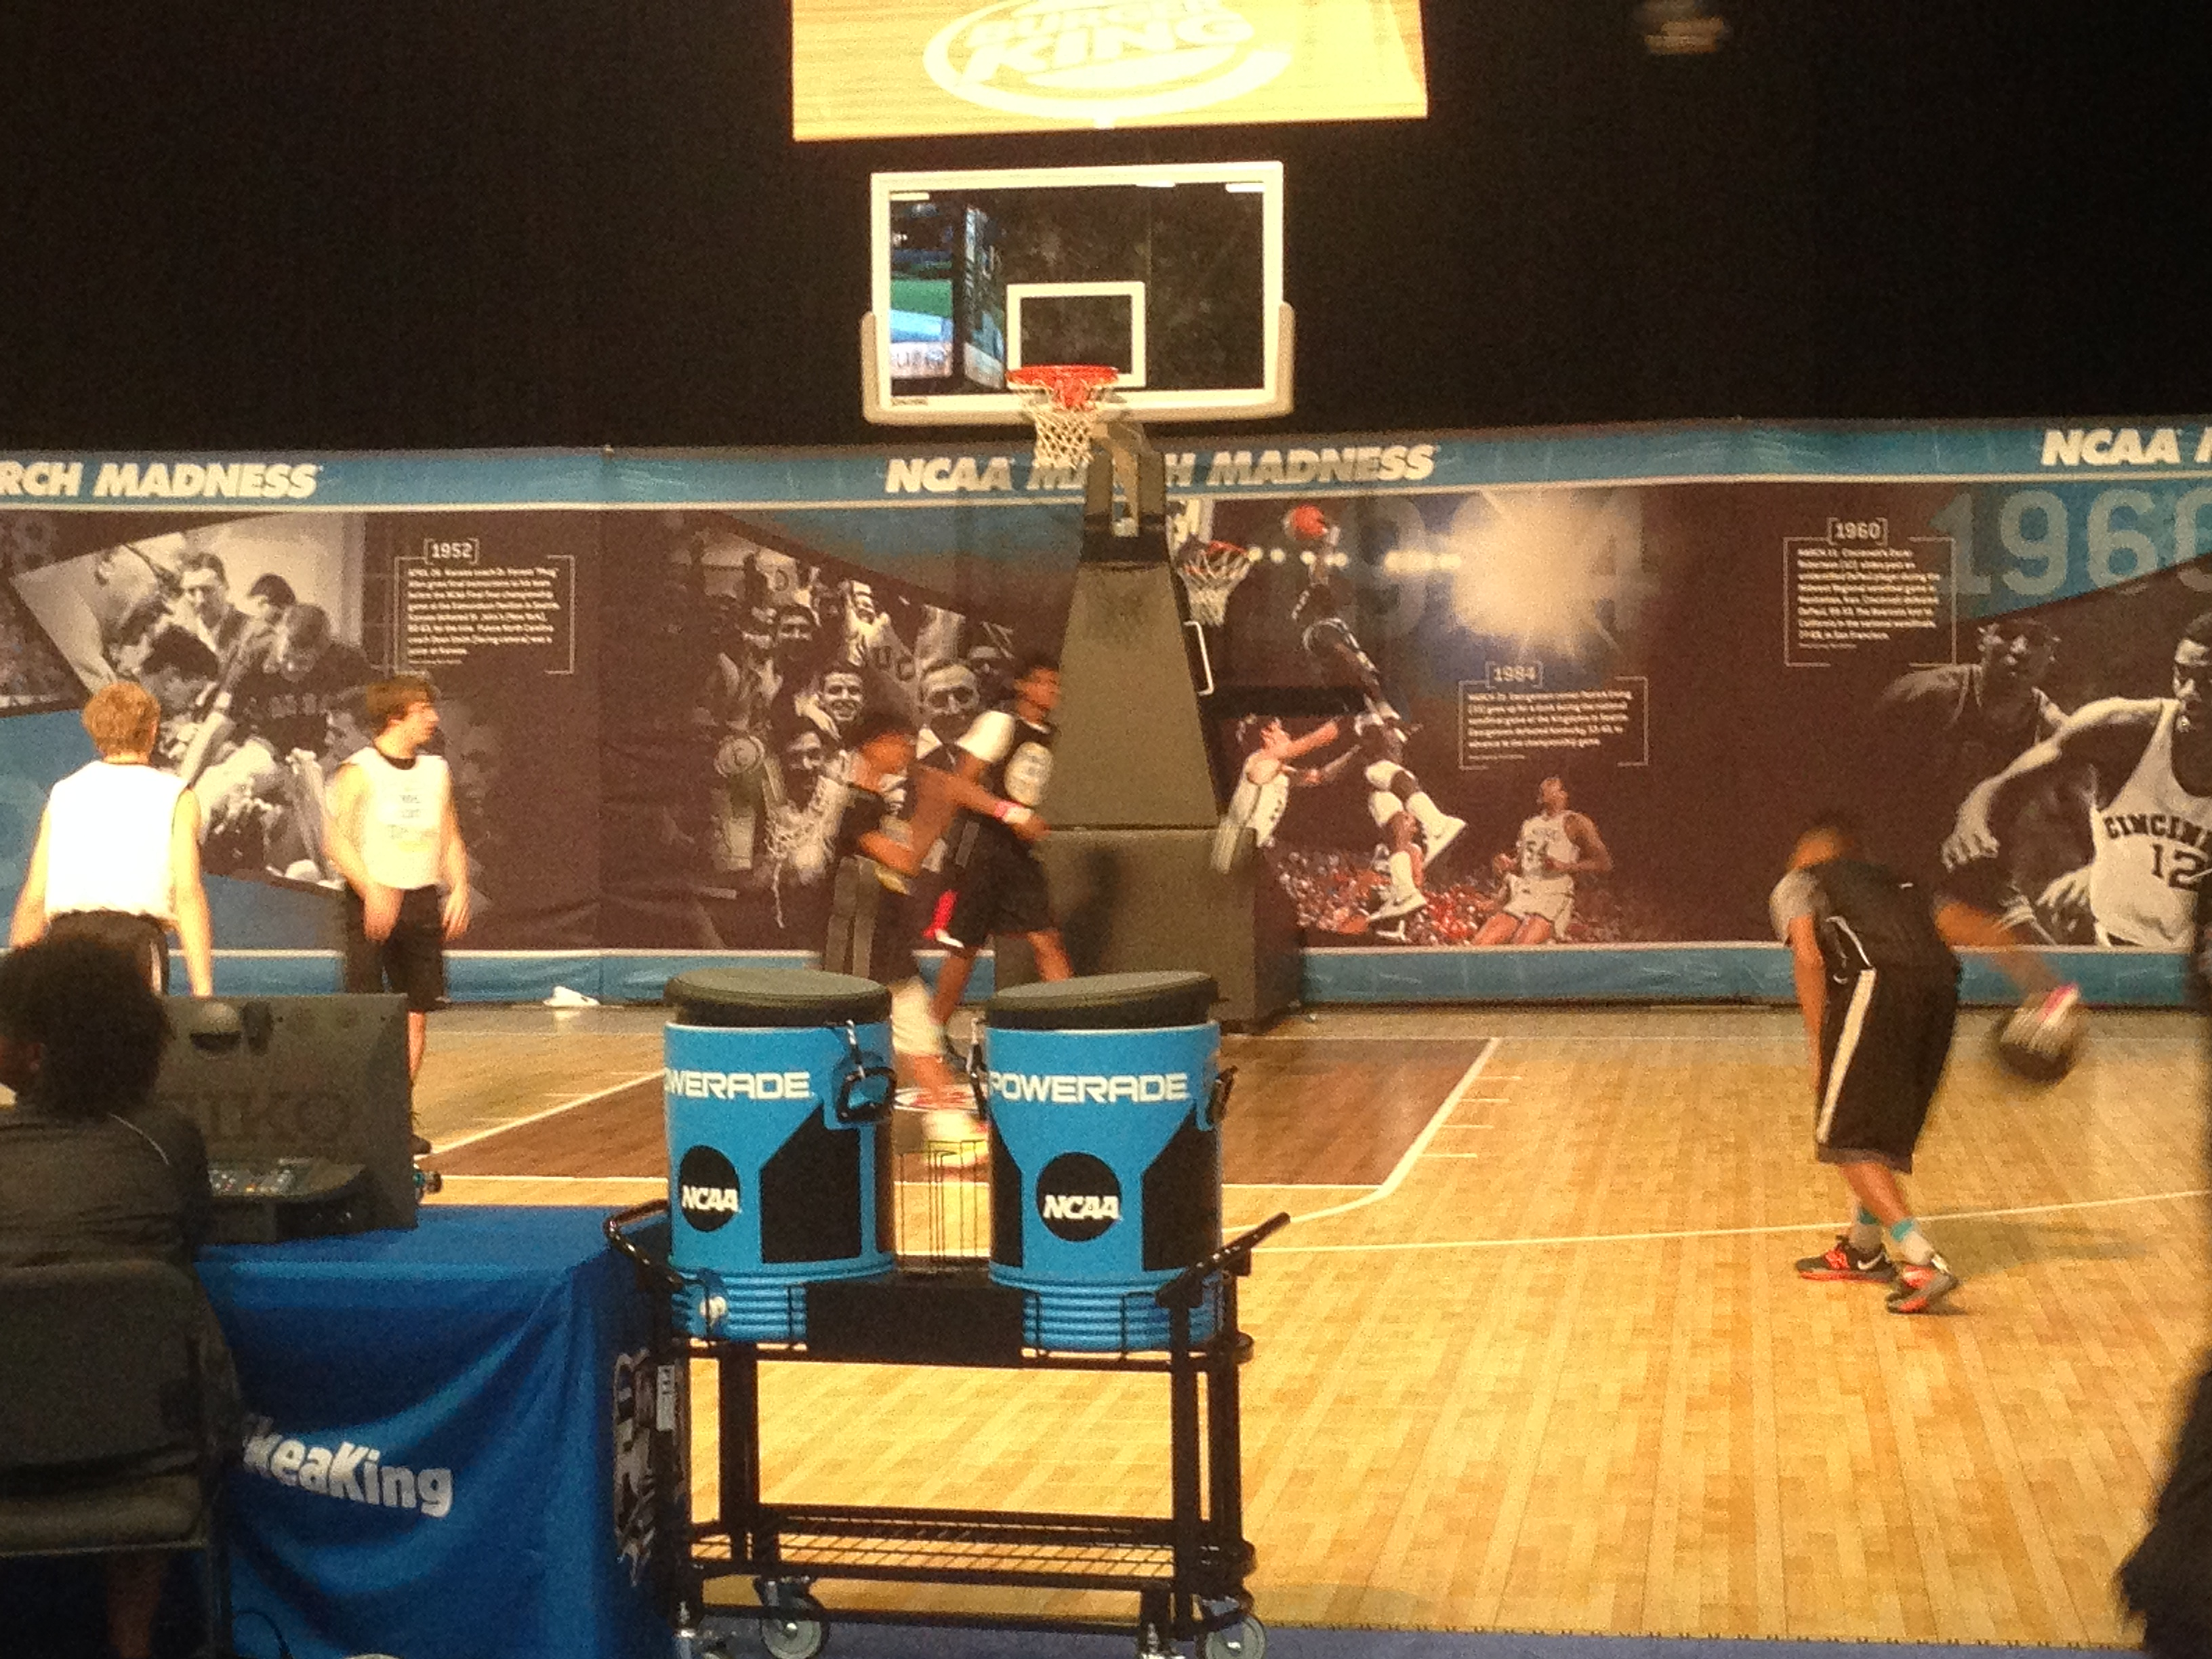 Fans got to play in 3-on-3 tournaments to show off their skills.